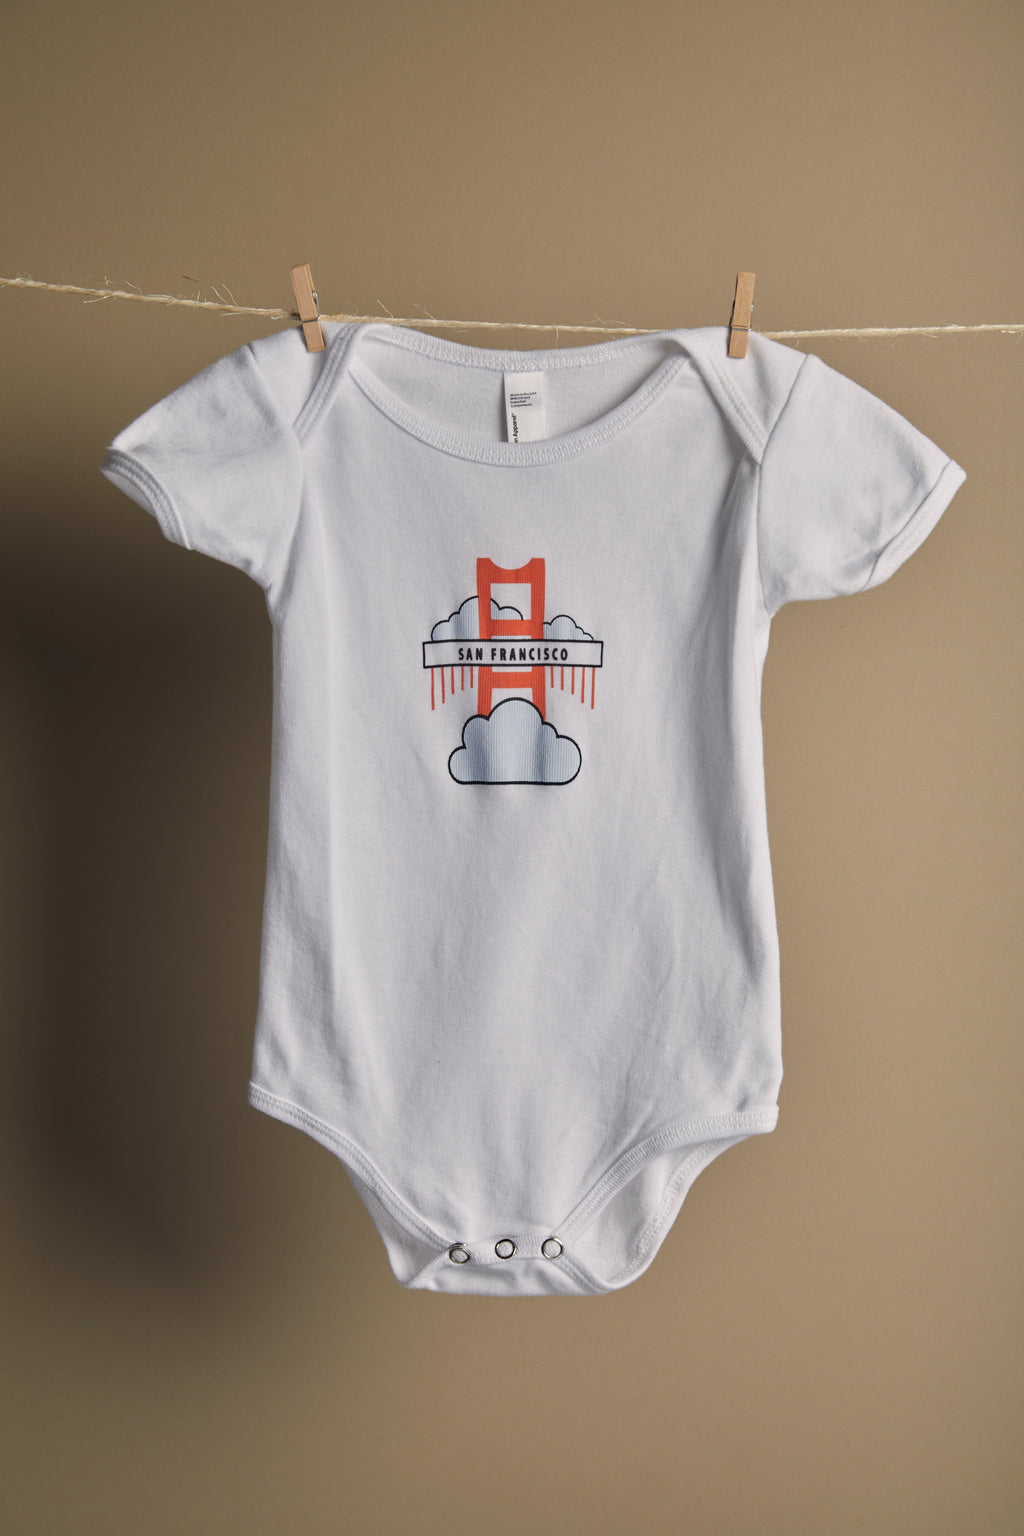 Golden Gate Bridge Onesie